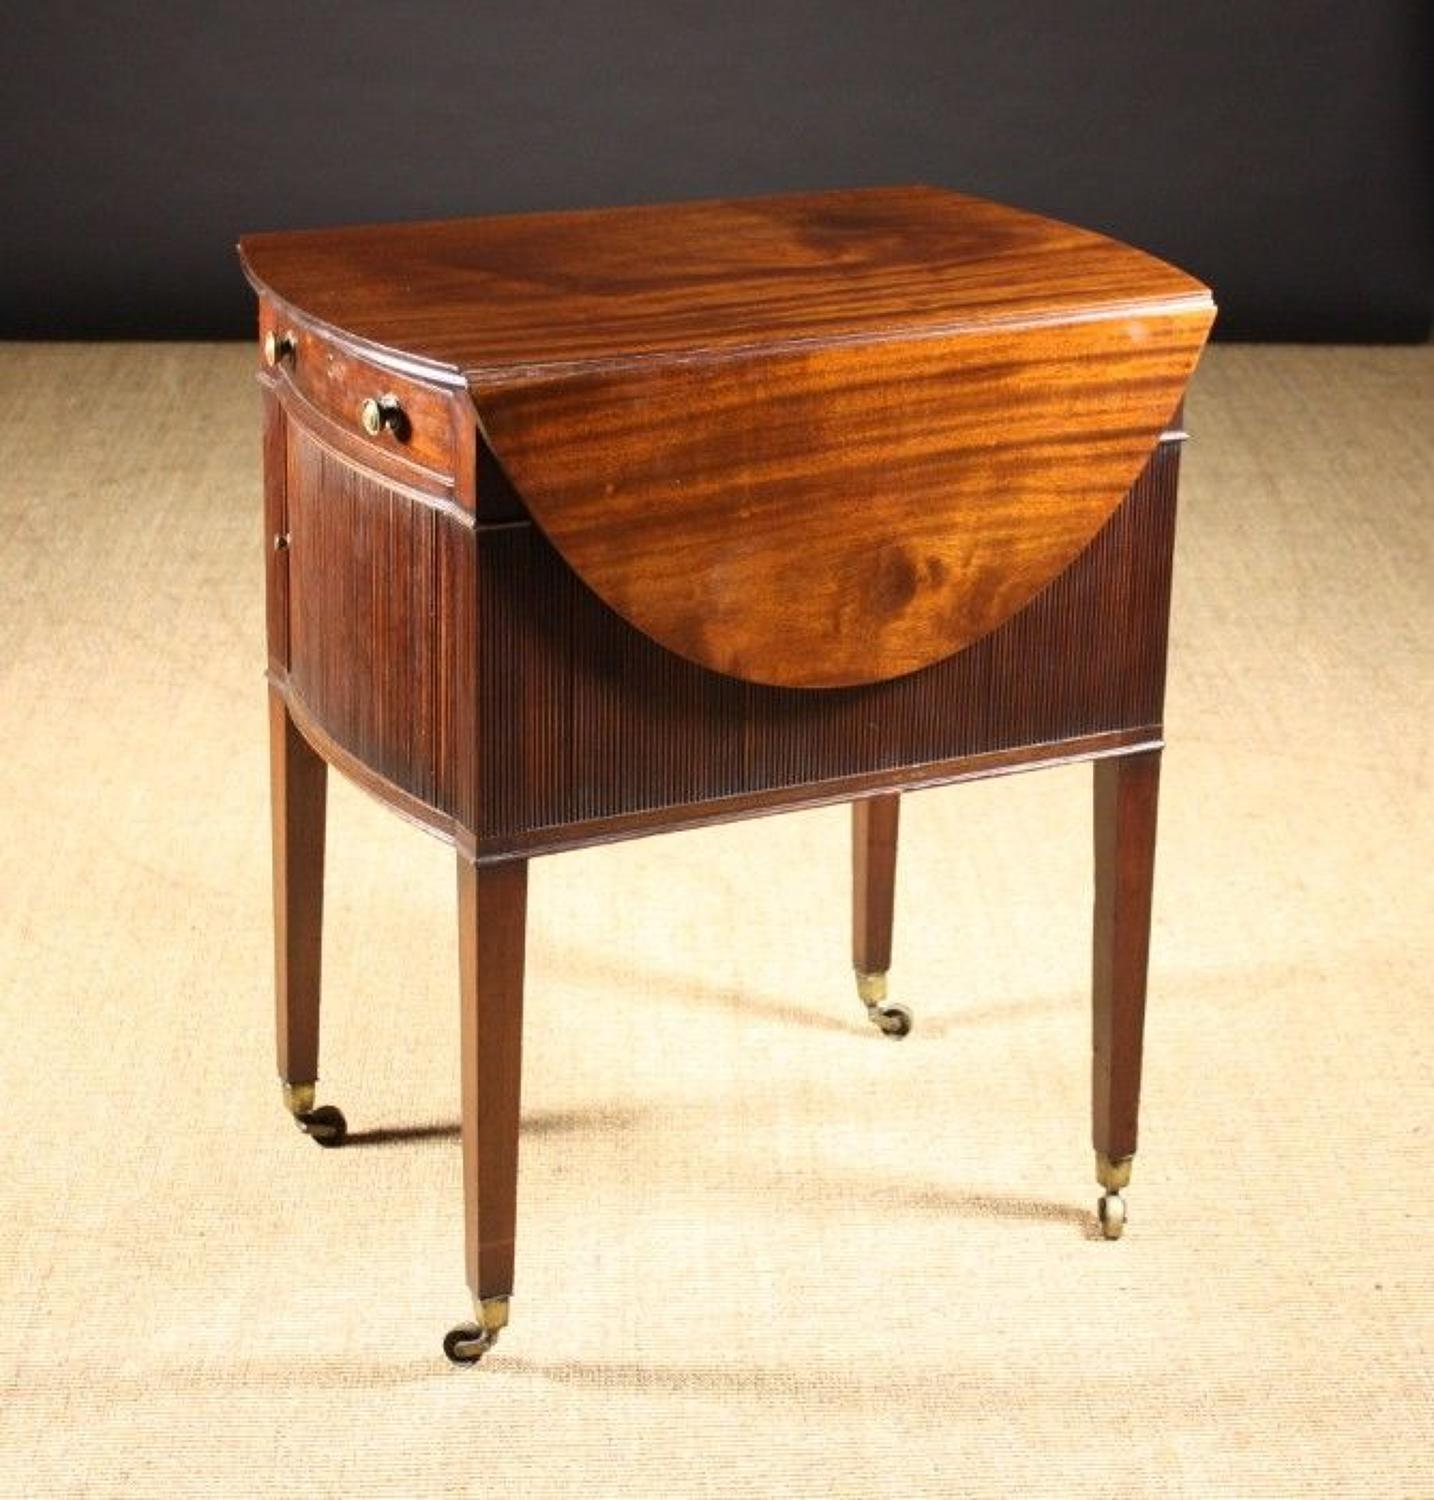 Geo III mahogany oval pembroke supper table